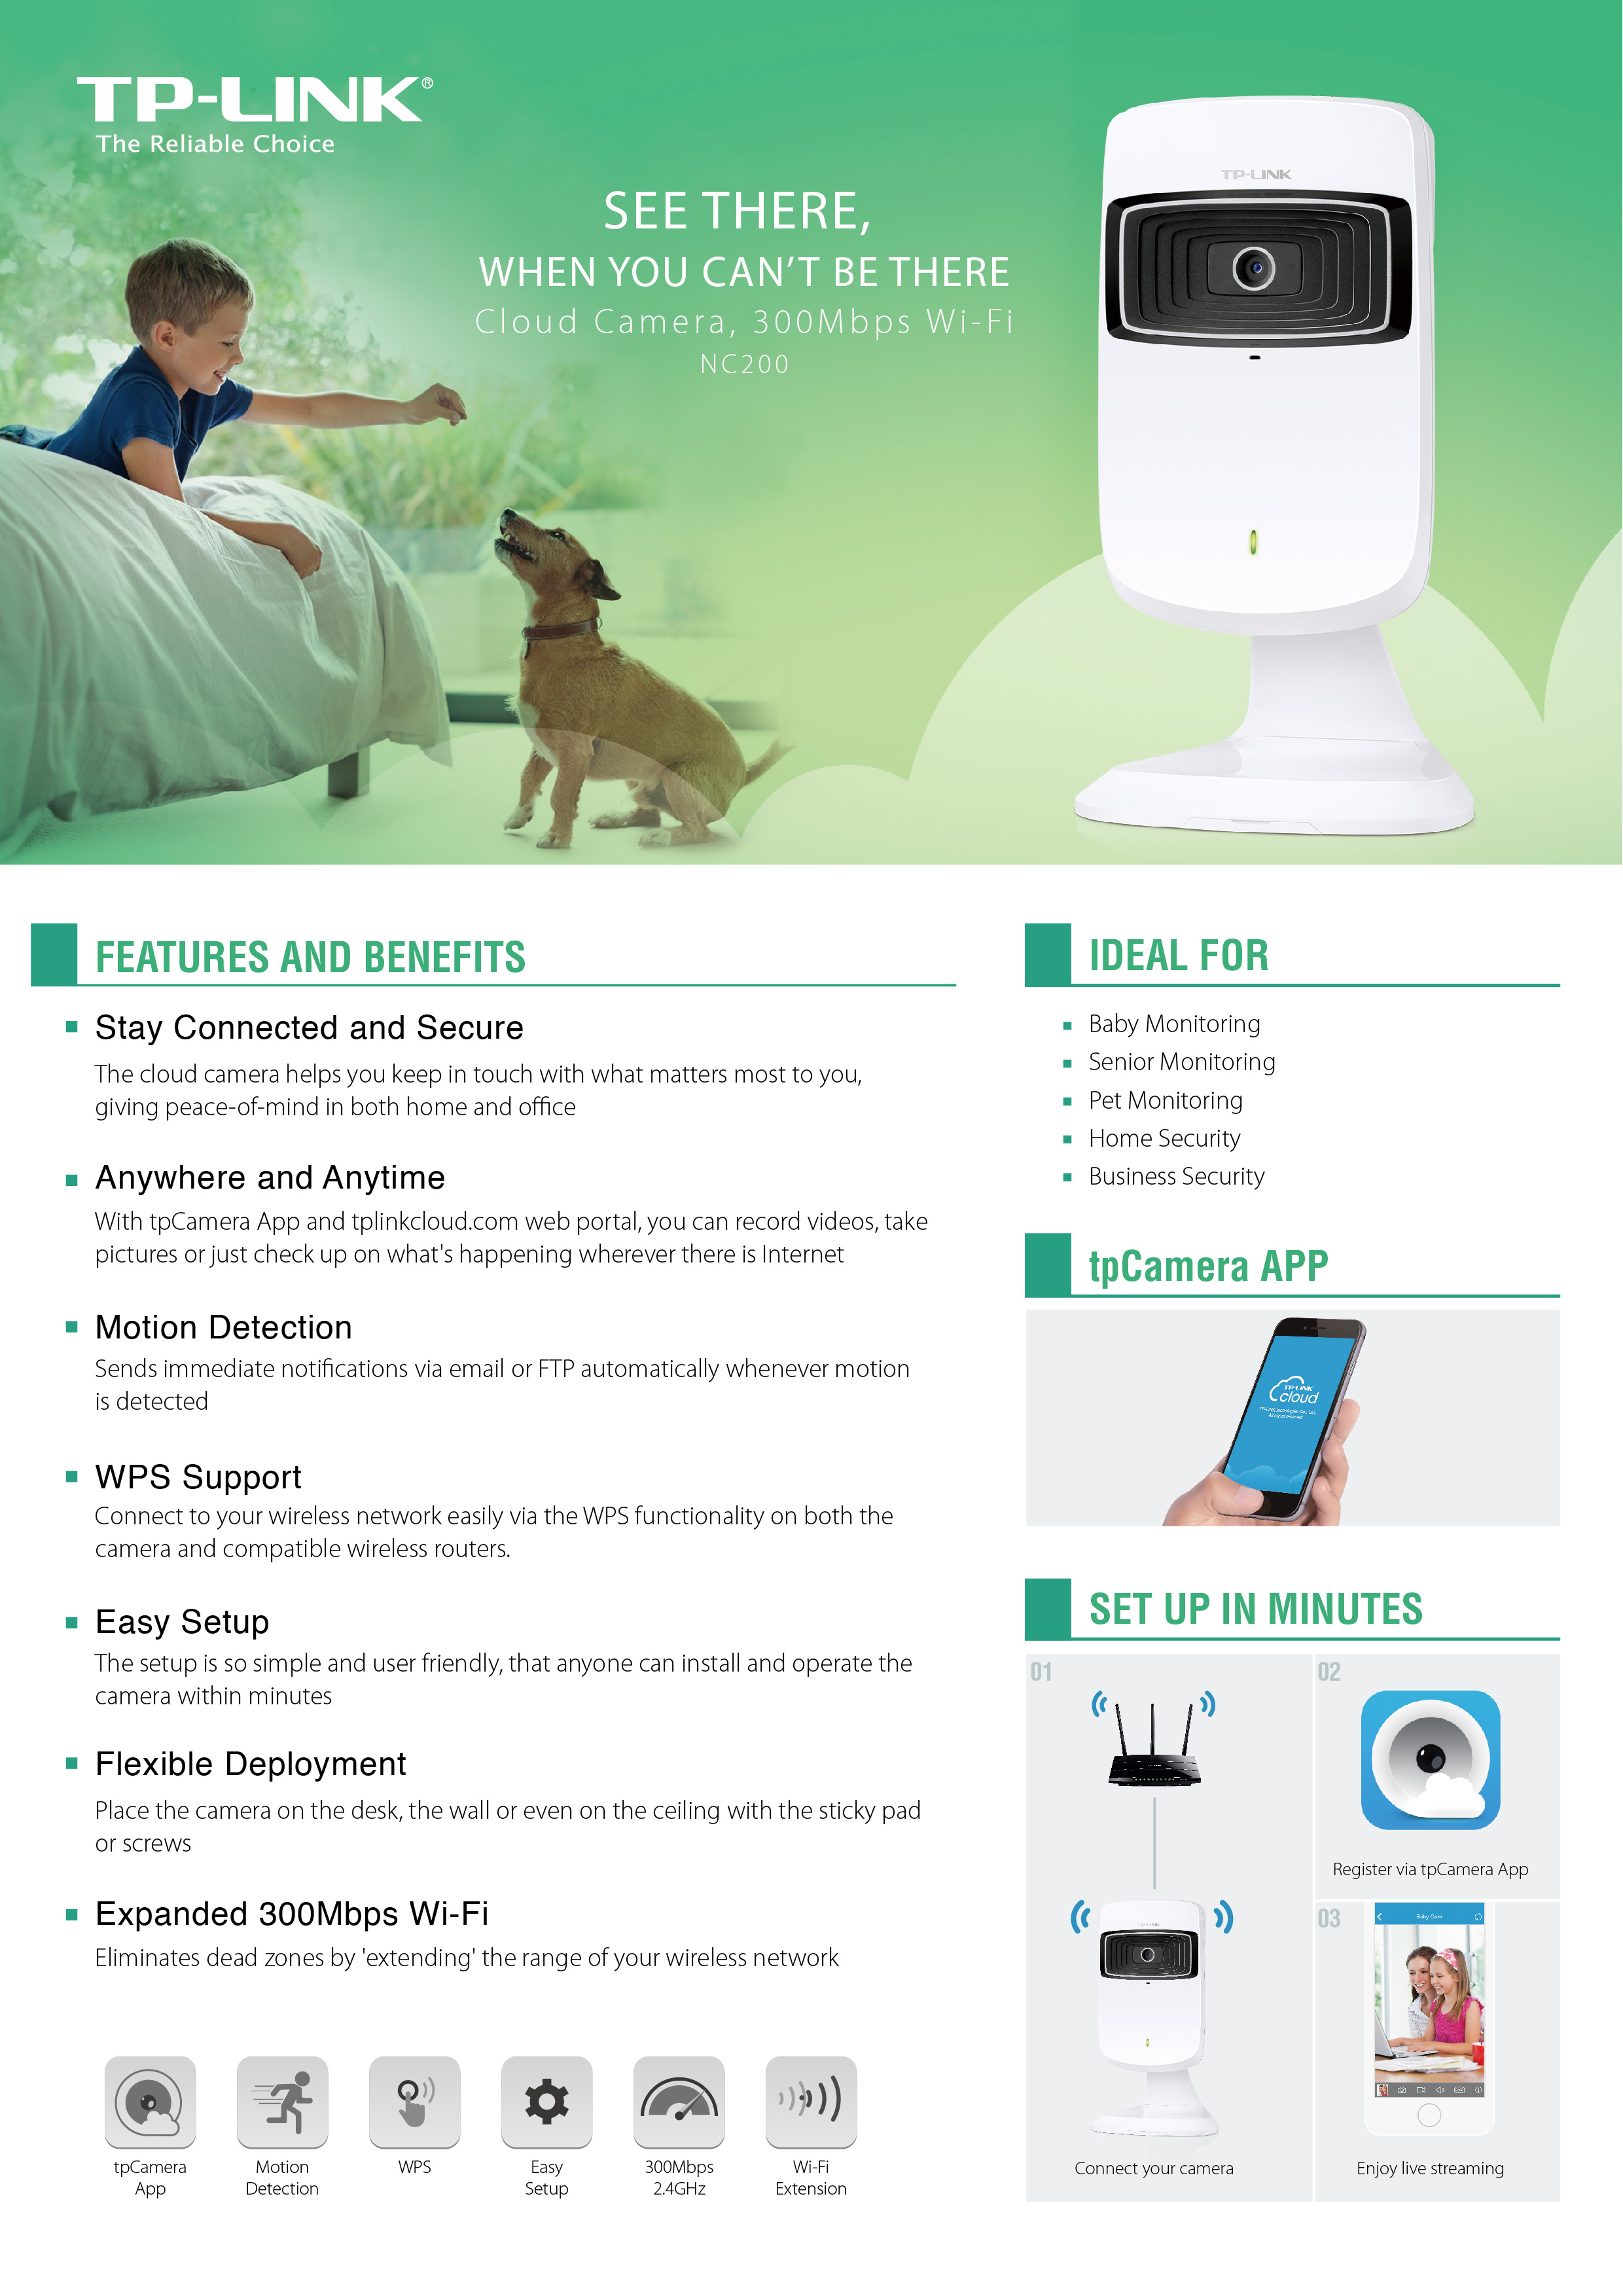 TP-LINK Launches NC200 Cloud Camera with 300Mbps Wi-Fi